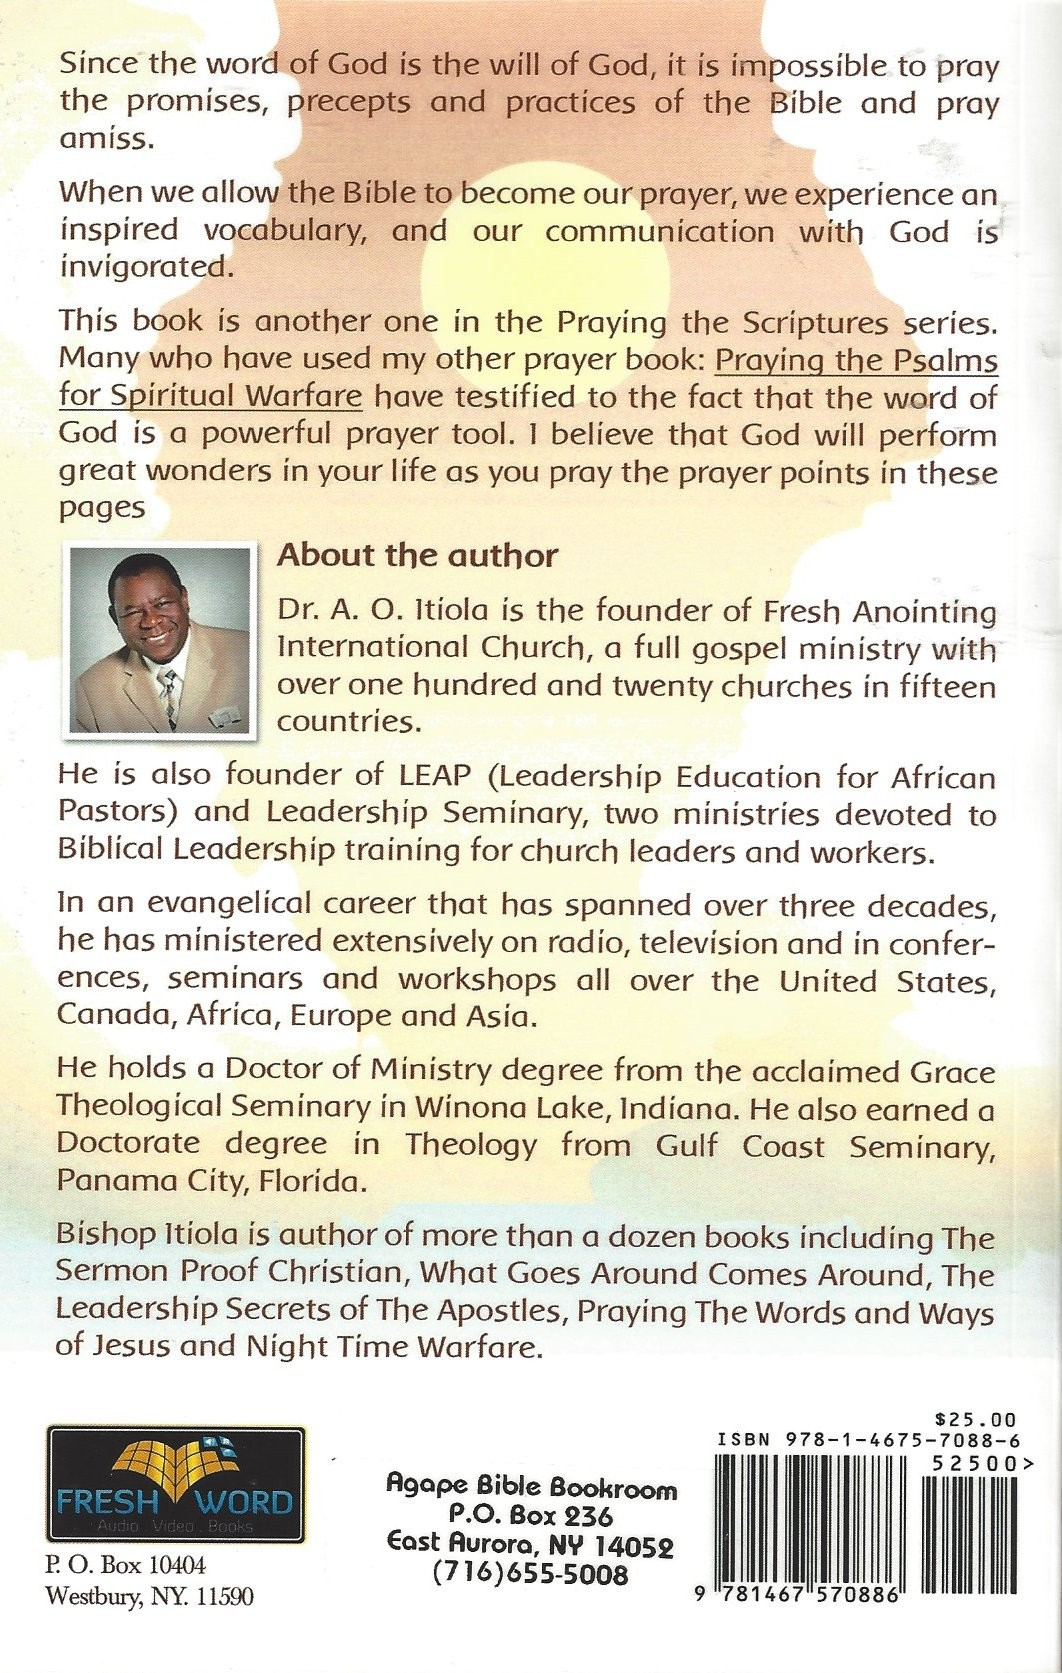 Praying The Scriptures For Warfare And Welfare (2013) - Agape Bible